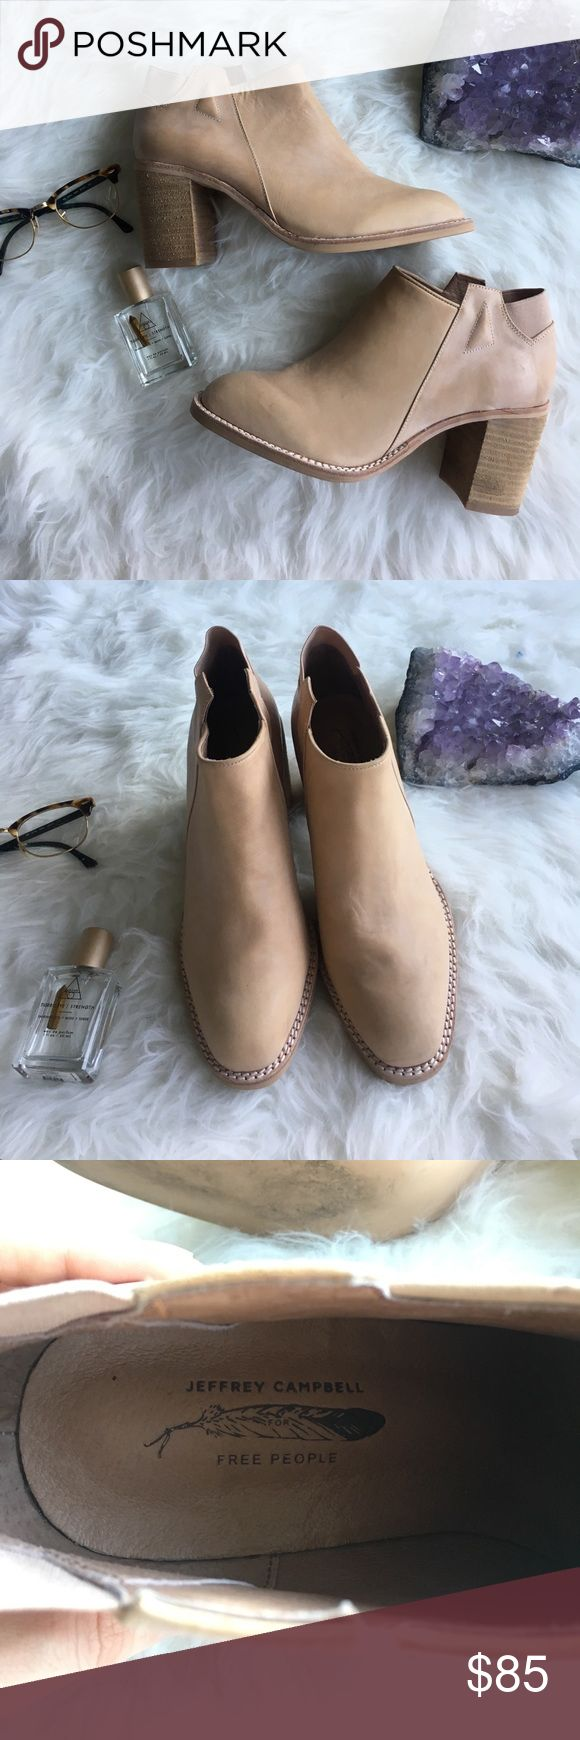 """Jeffery Campbell nude ankle boots Worn once and in absolute perfect condition! Jeffery Campbell for Free people nude real leather quality made ankle boots. Heel height is 3"""". From a smoke free home! REASONABLE offers welcome! Free People Shoes Ankle Boots & Booties"""